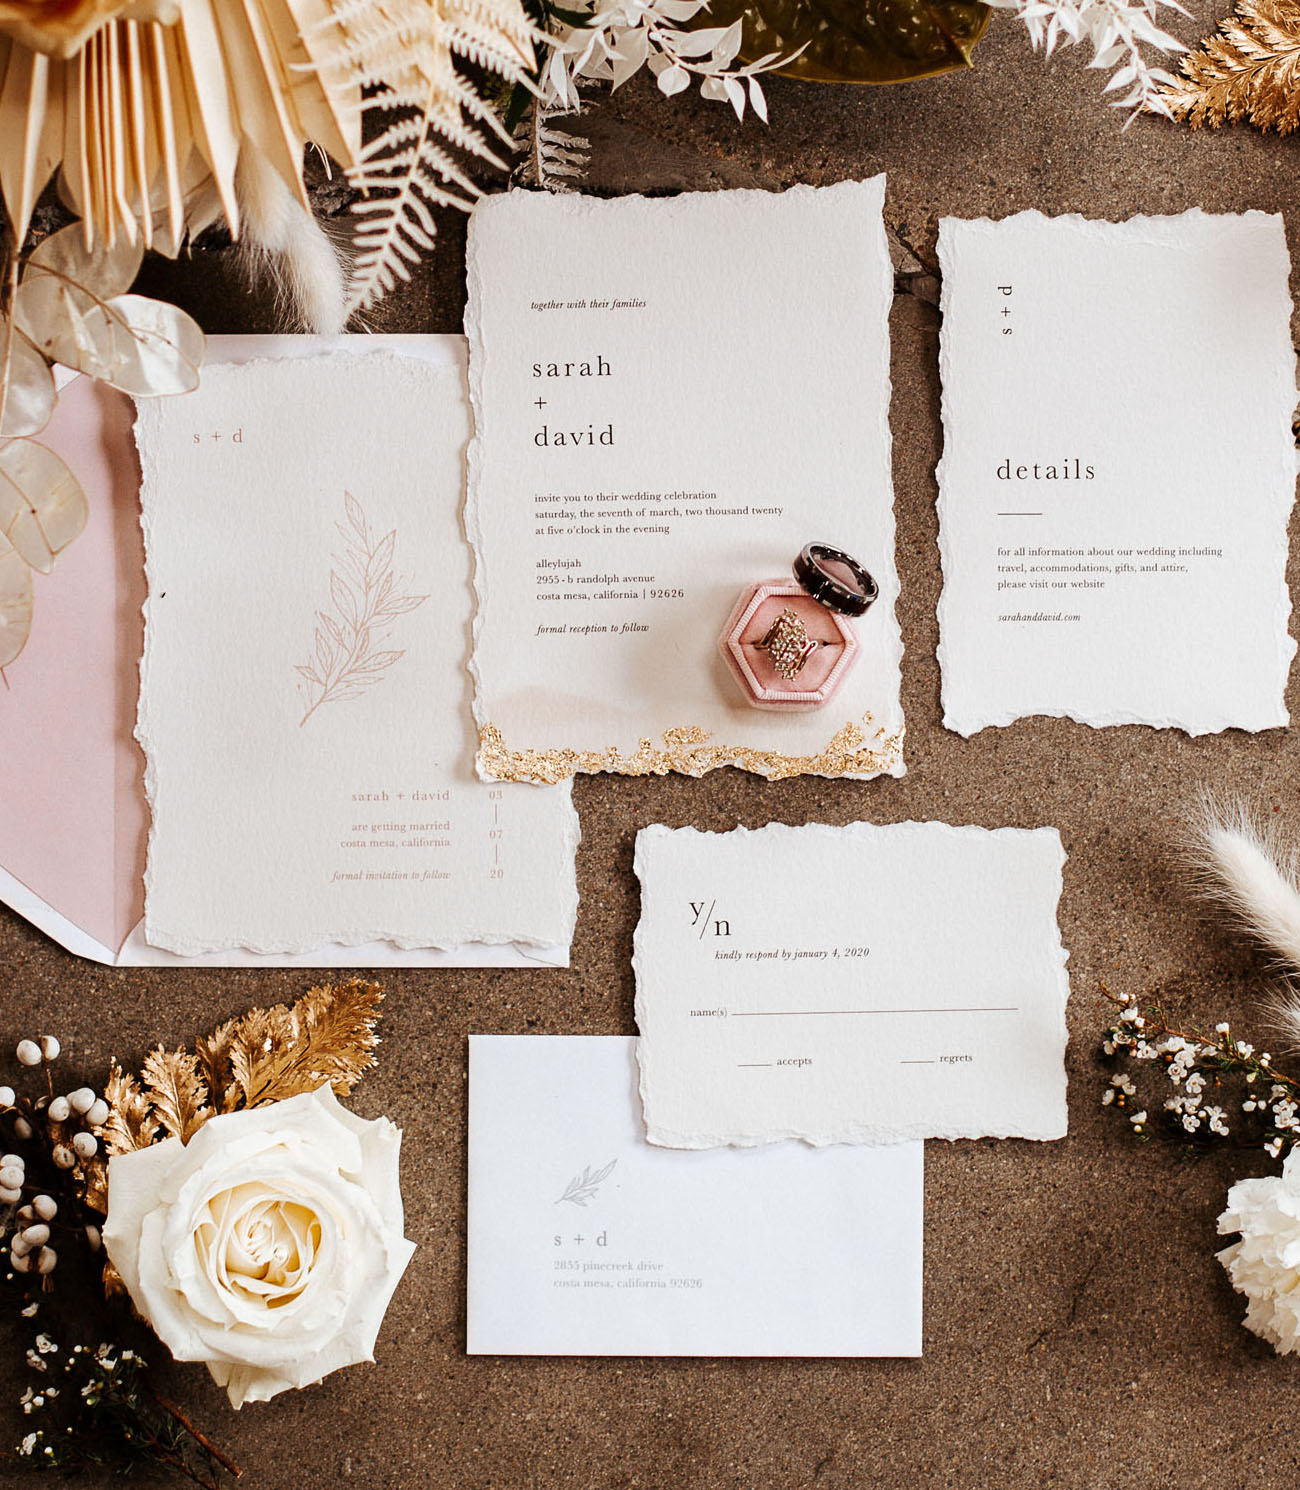 The wedding stationery was done with a raw edge and gold leaf